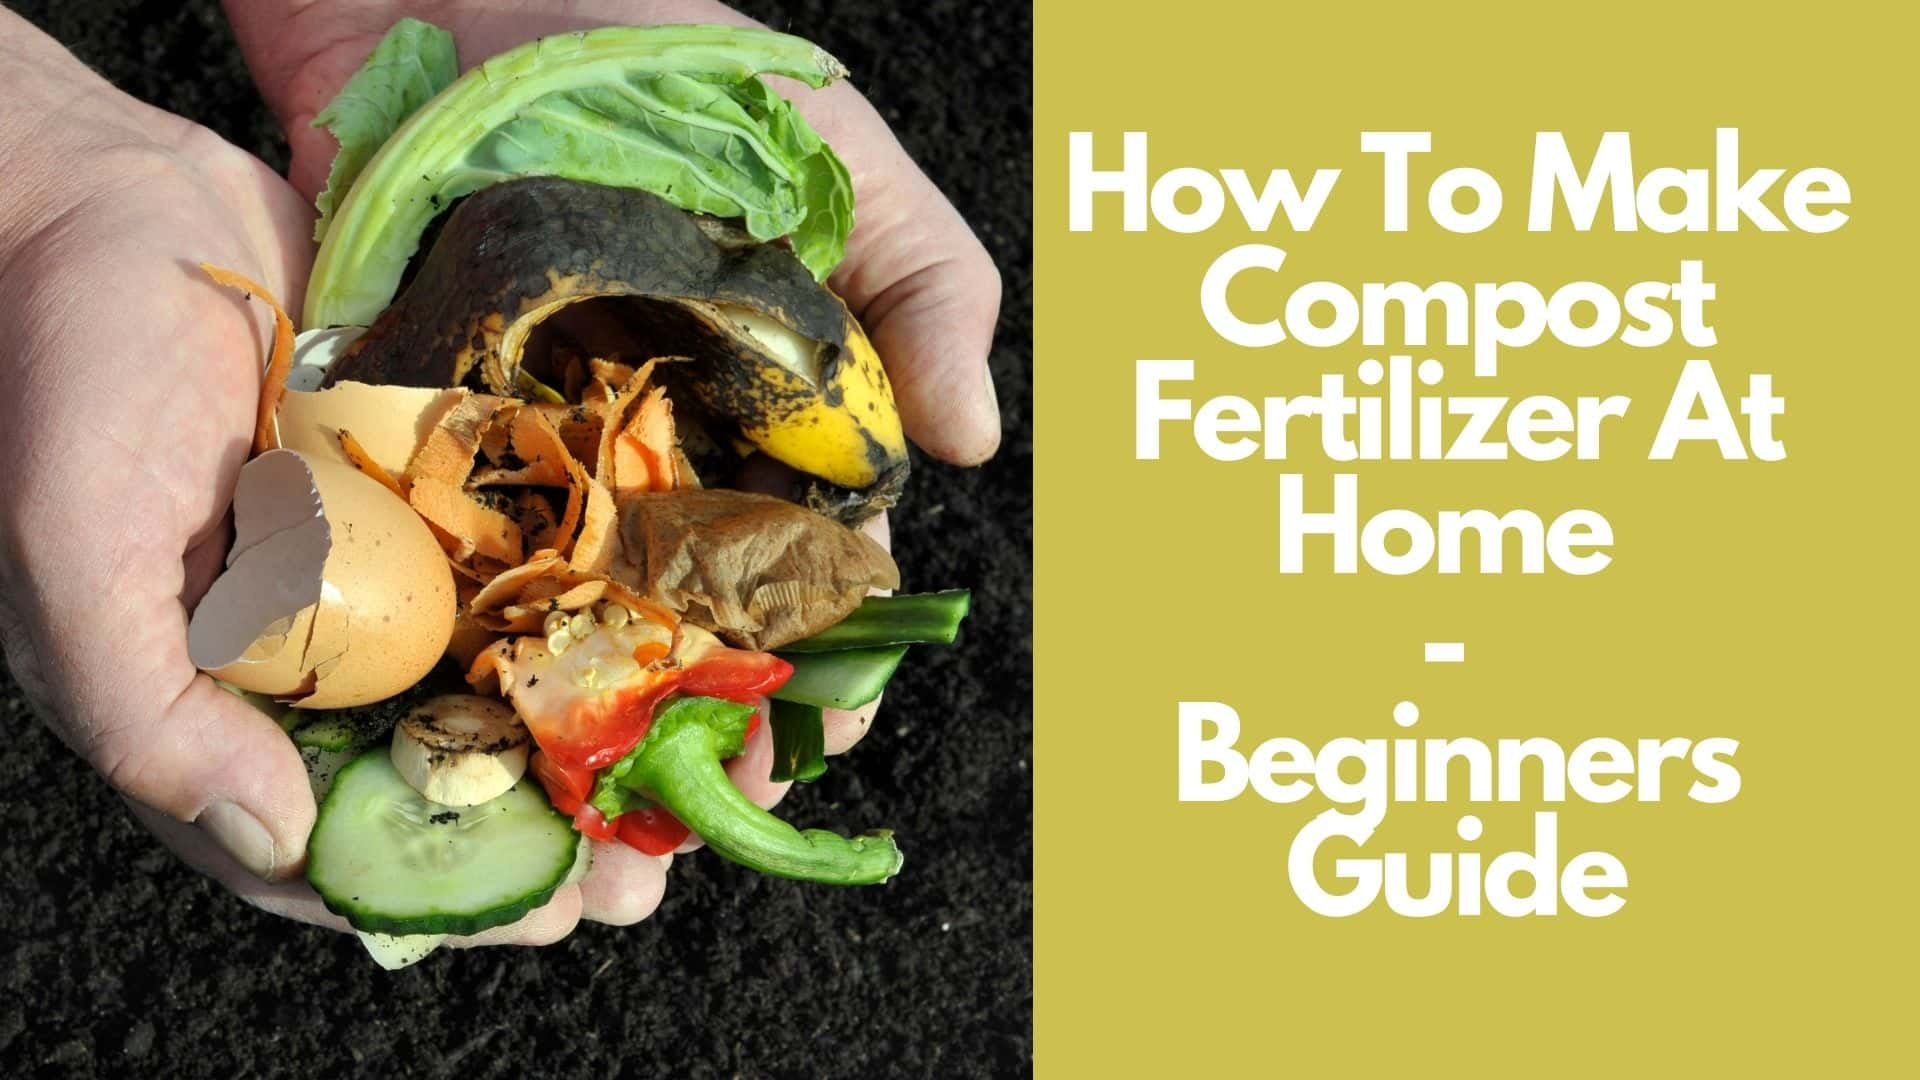 How To Make Compost Fertilizer At Home | Beginners Guide